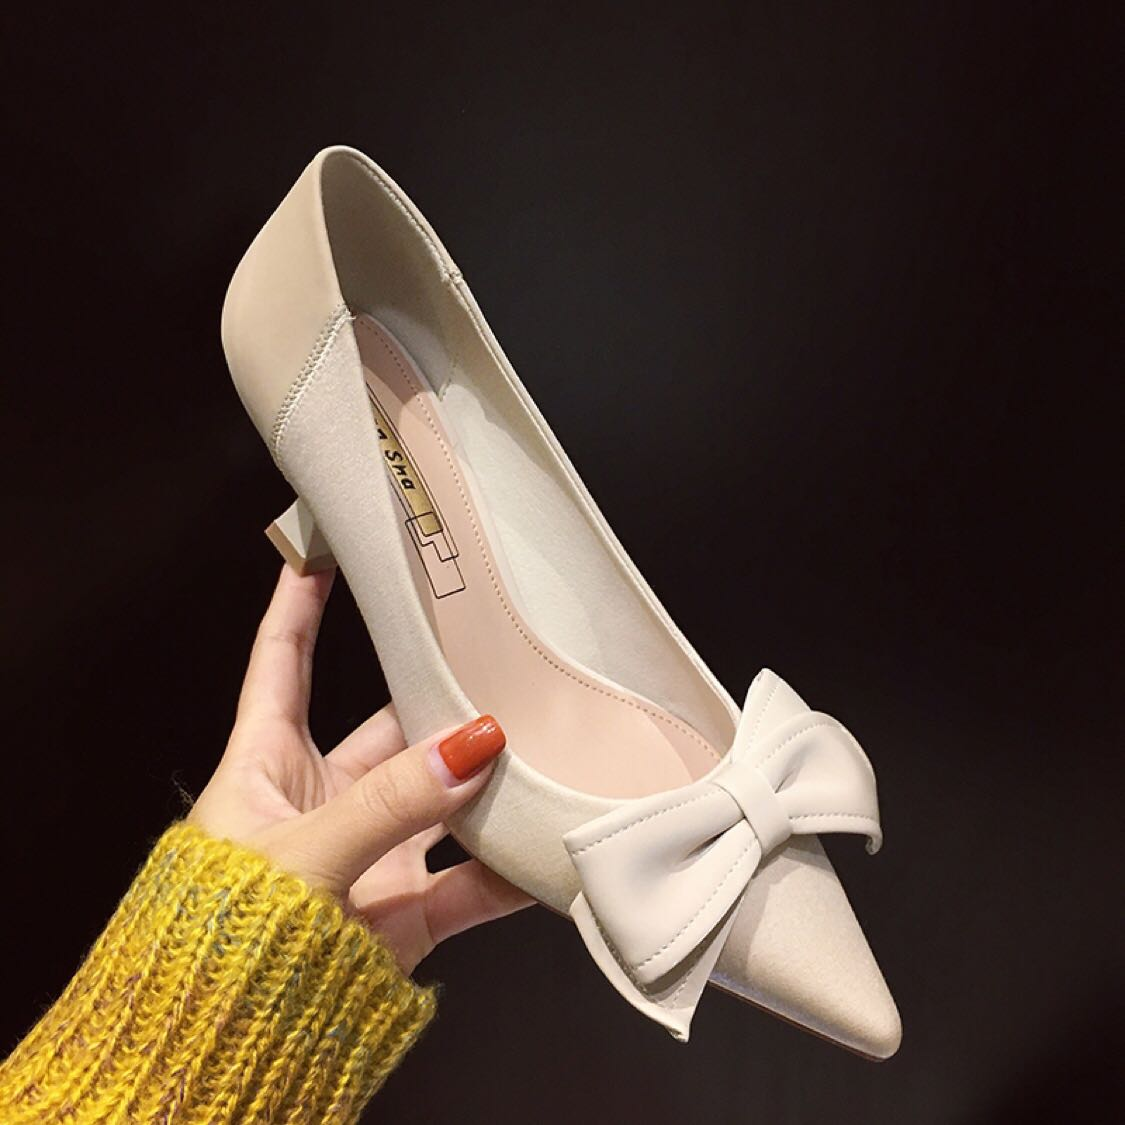 Jinhansha high heeled shoes women 2020 new fairy style bowknot thin heel versatile soft leather pointed cat single shoes women